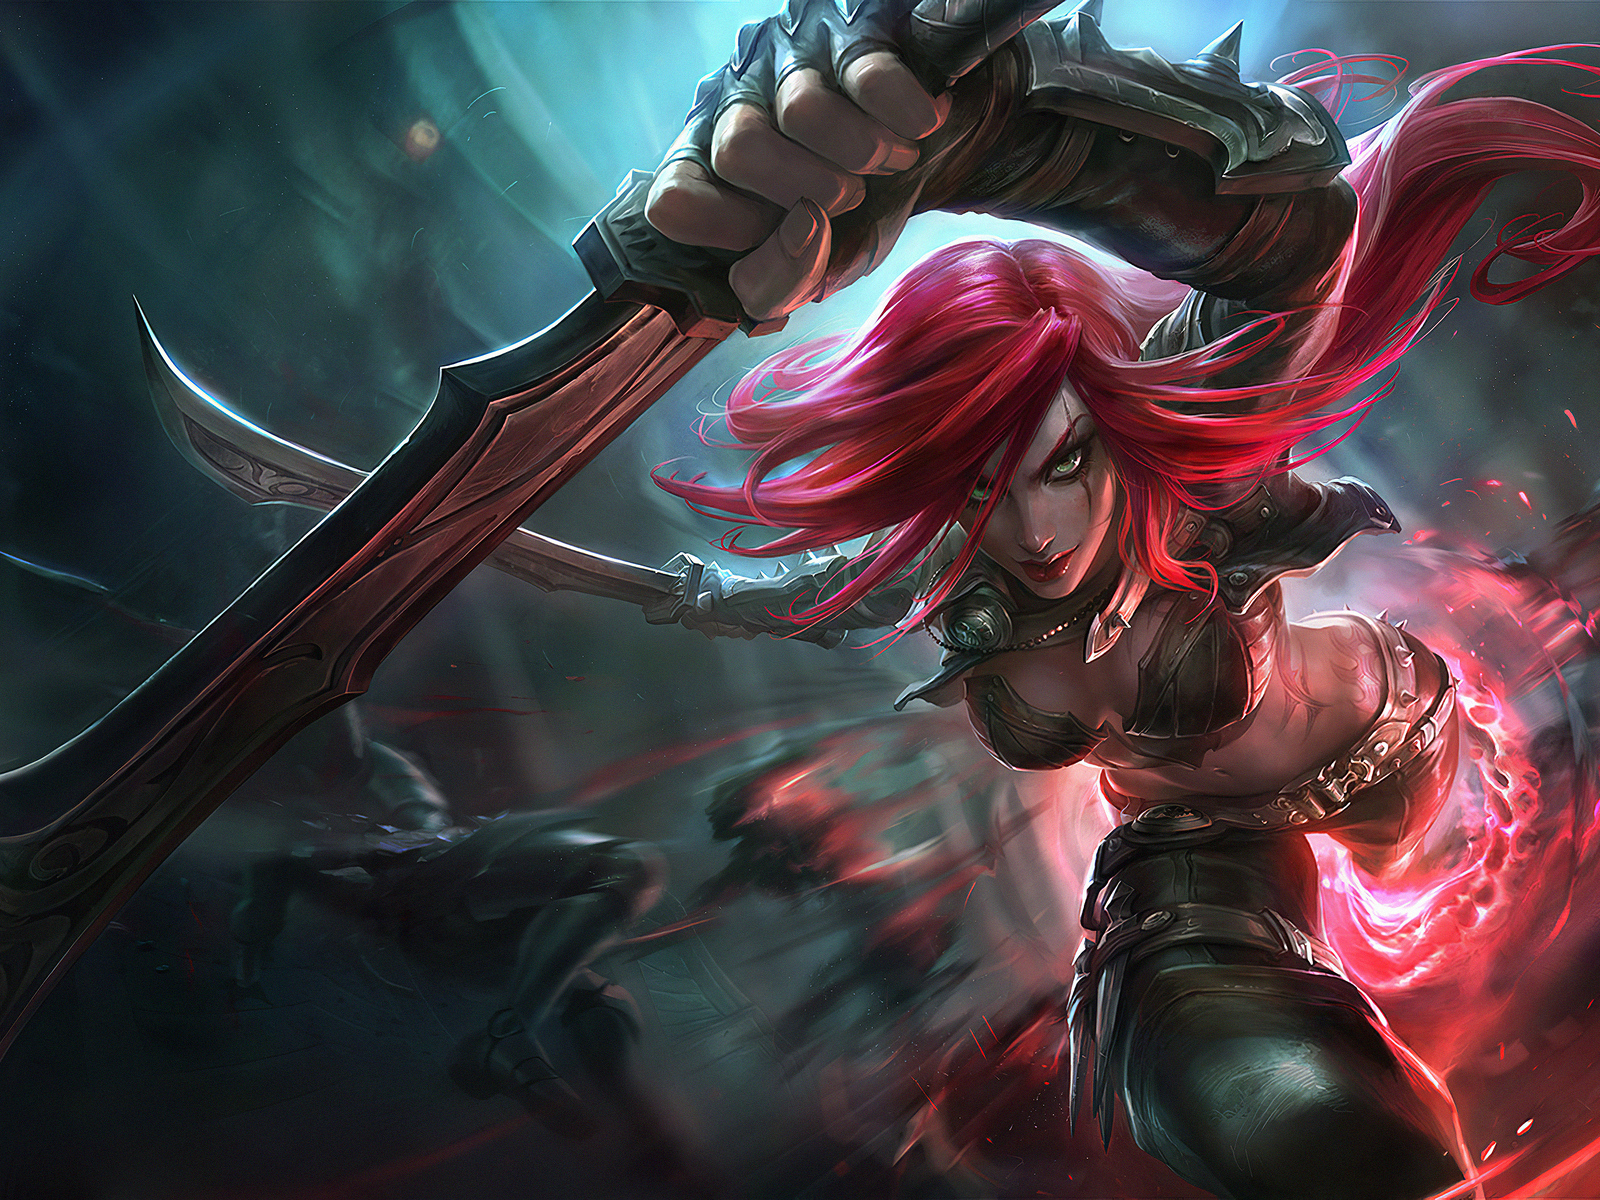 katarina-lol-splash-art-4k-kw.jpg